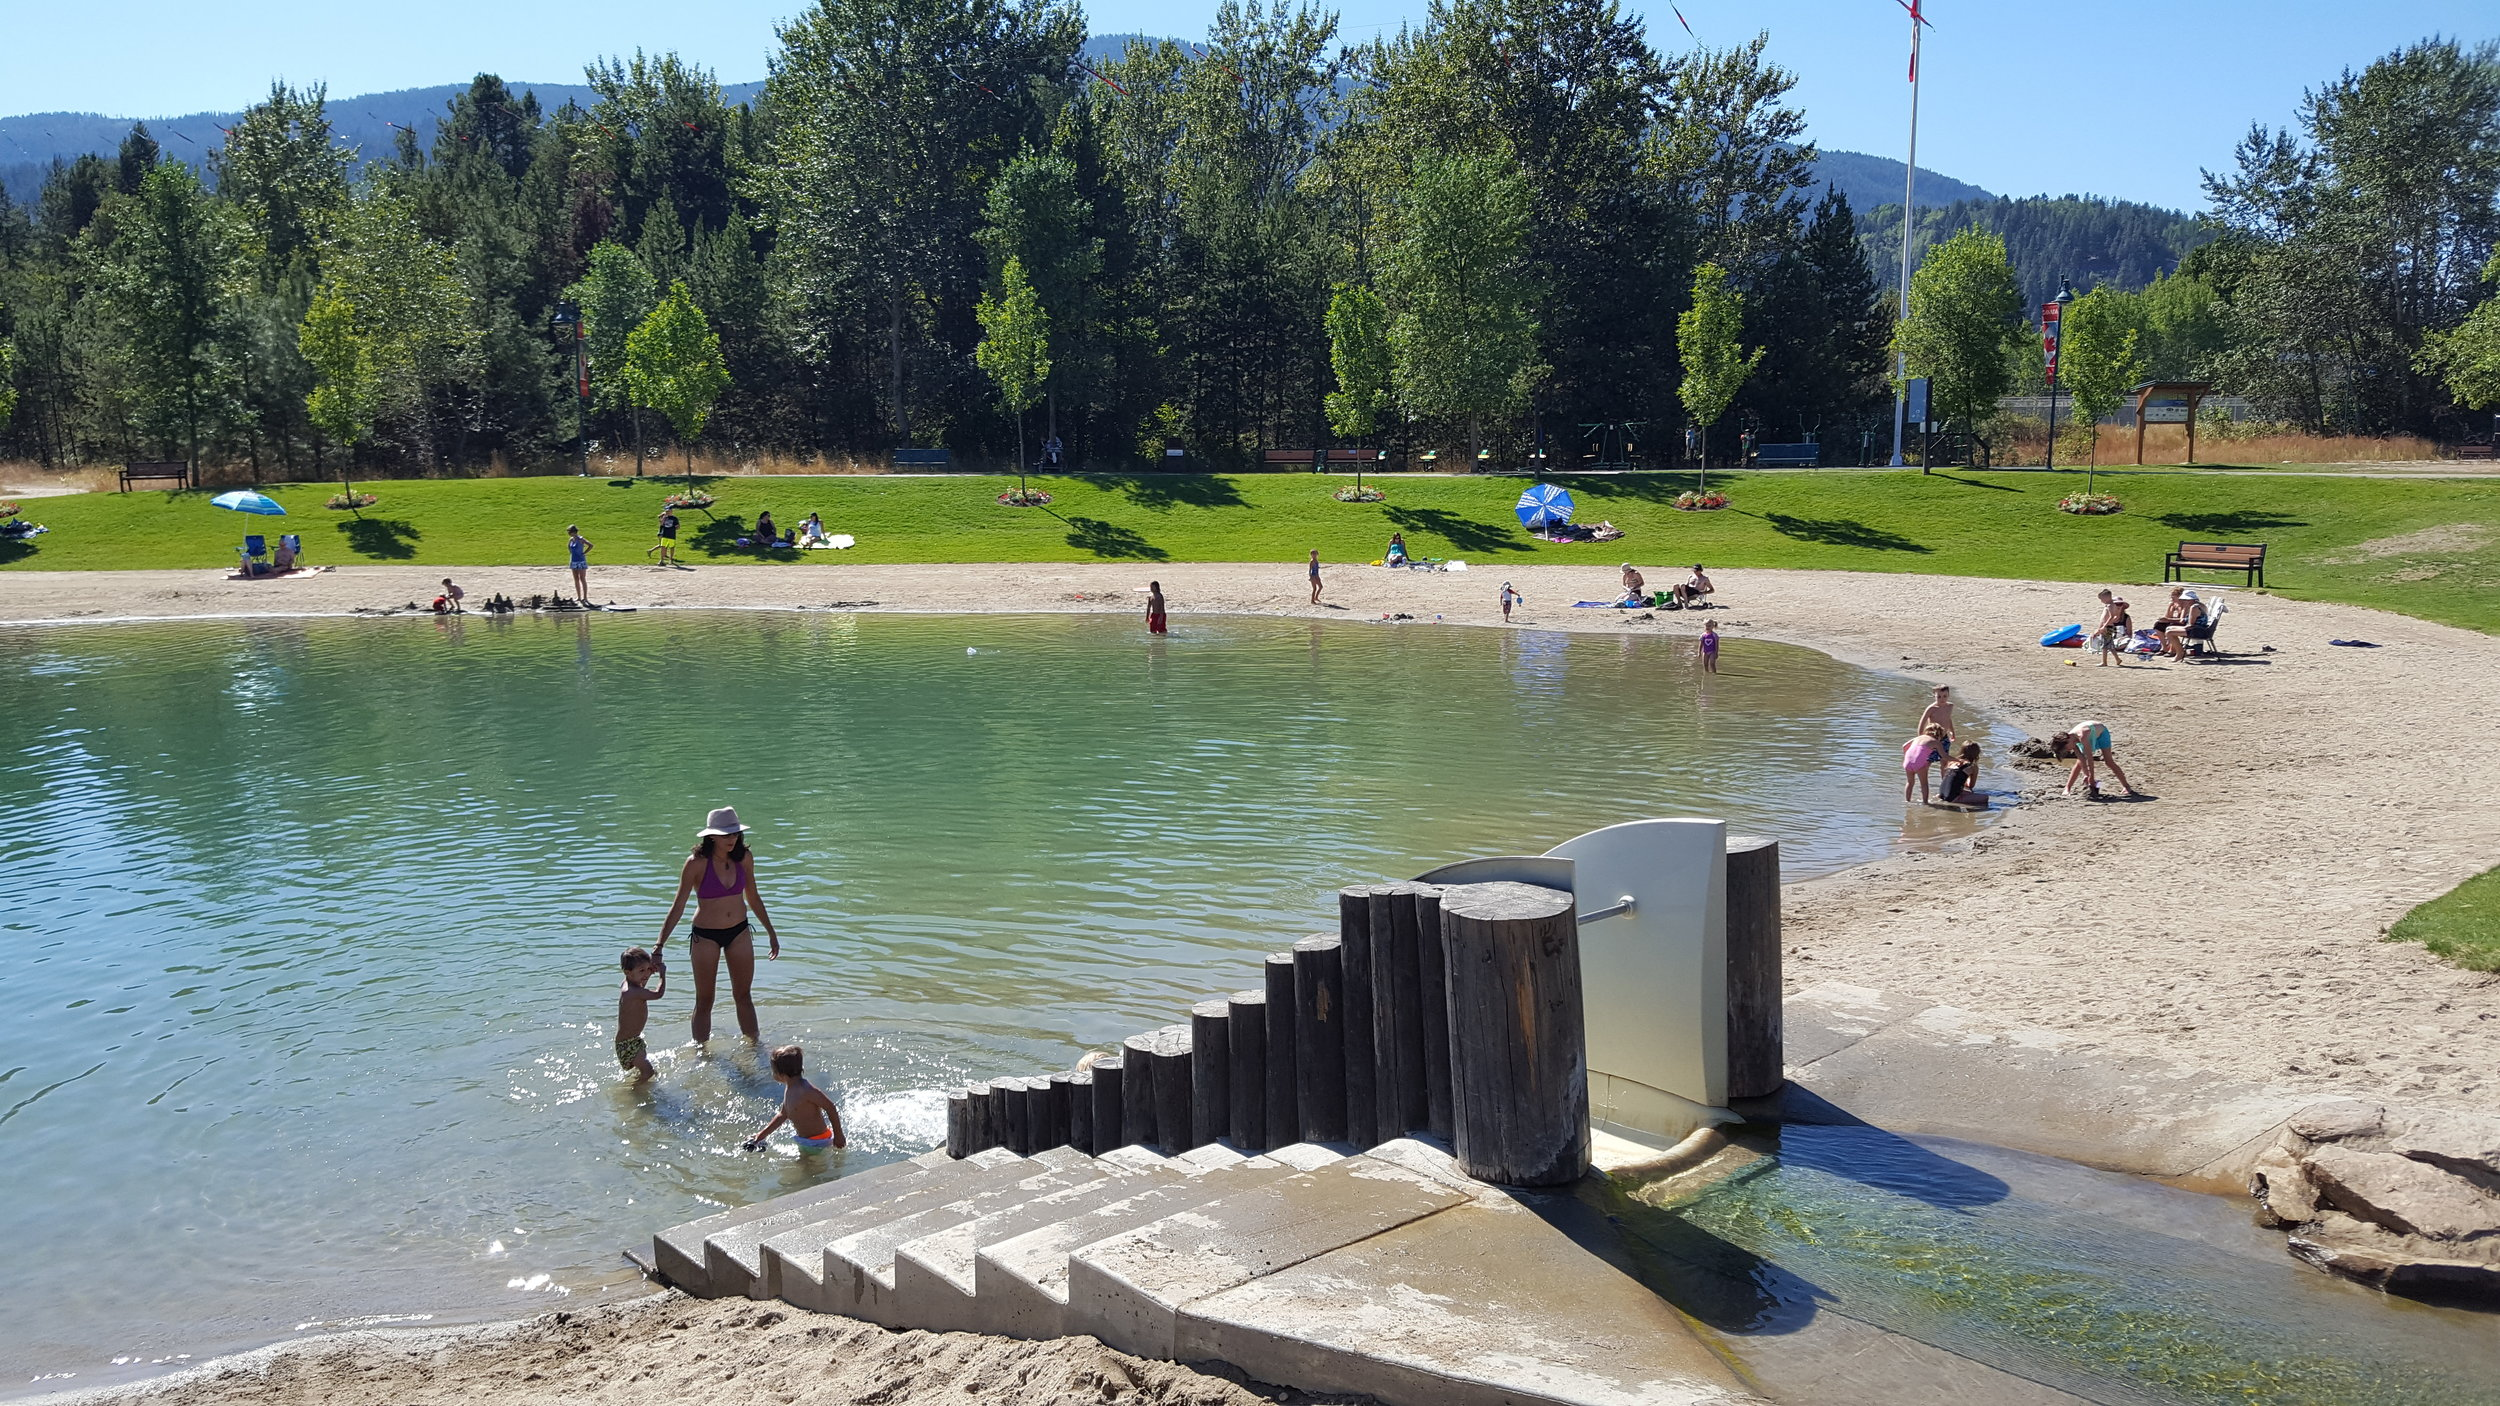 Dude, they divert some of the river to create swimming ponds which are connected by slides. (See video to the right) Durango, take note.